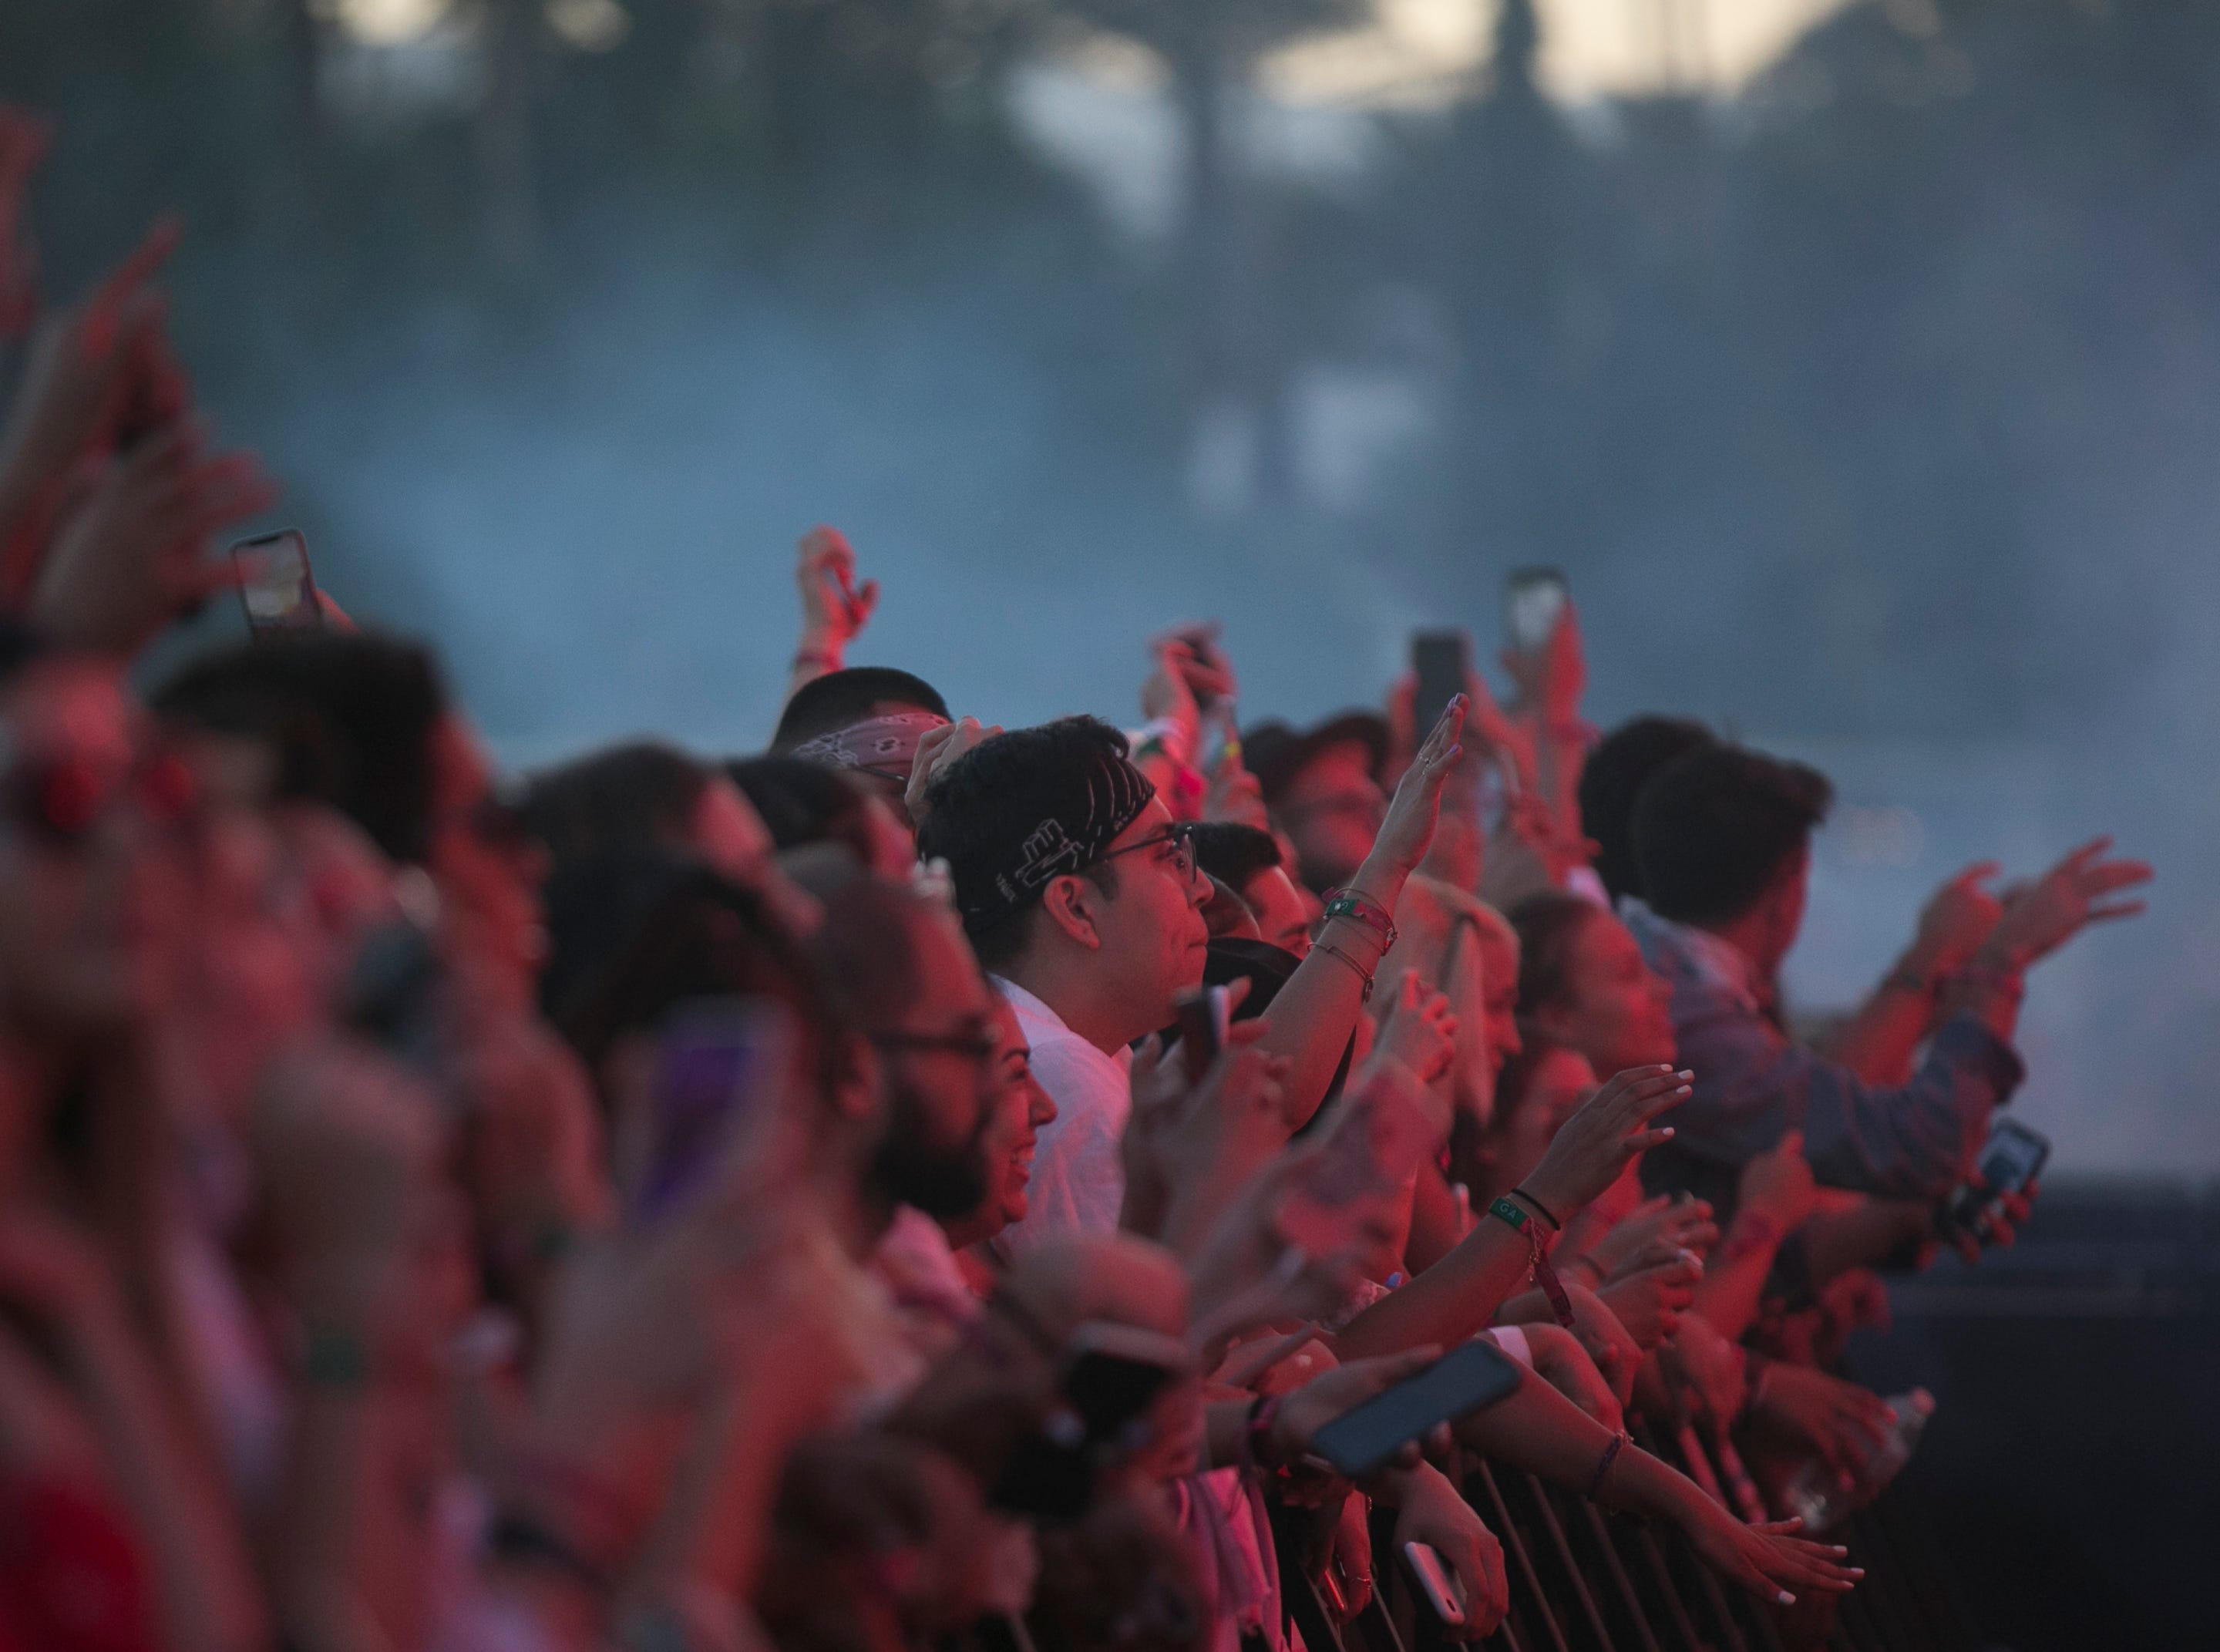 Festival goers dance to Zedd performing on the main stage at the Coachella Valley Music and Arts Festival in Indio, Calif. on Sun. April 21, 2019.